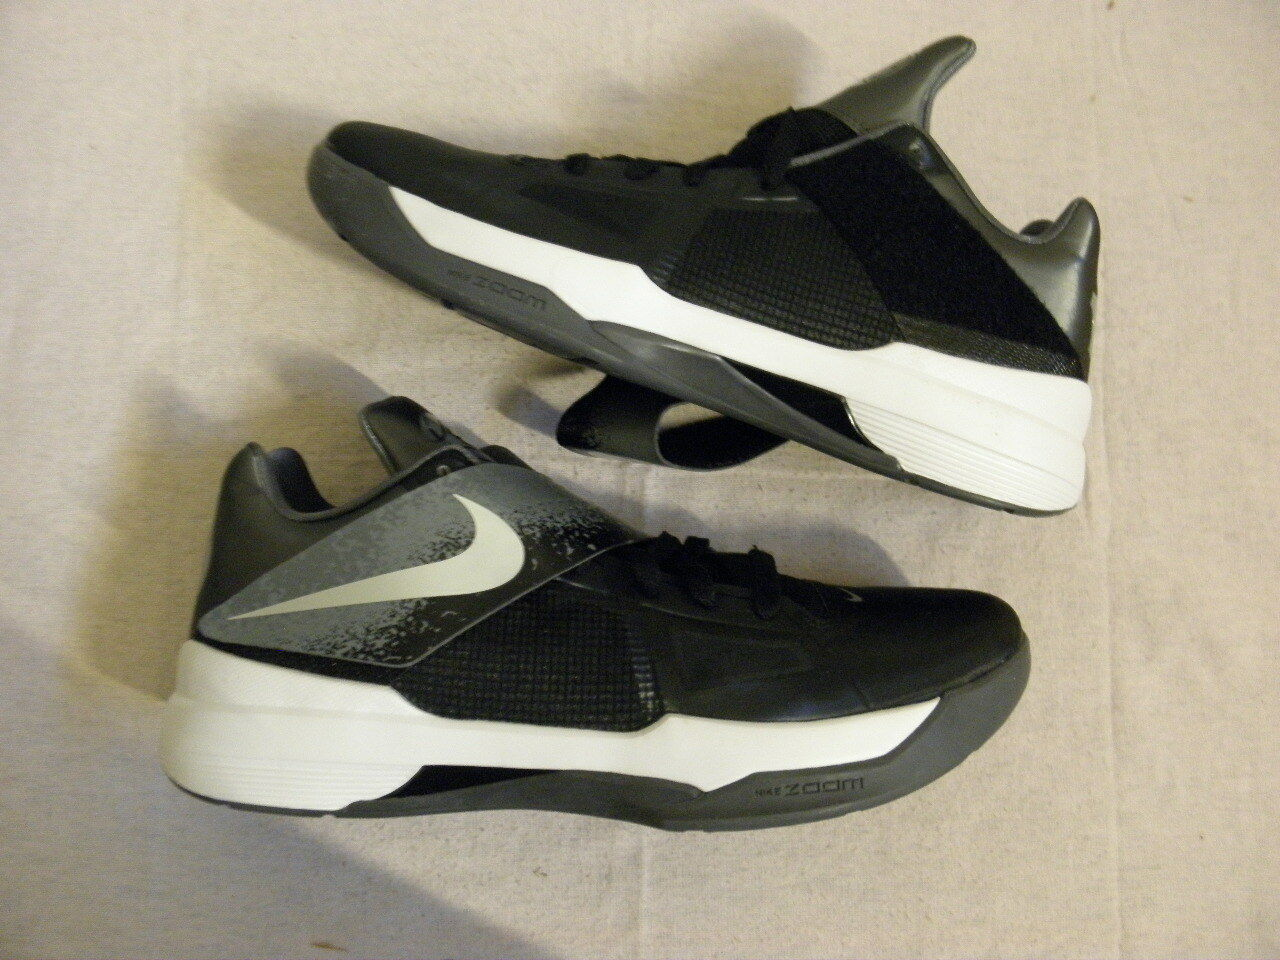 outlet store e3a0d 04096 Nike Air KD 4 IV KD4 EYBL Player Sample Edition Edition Edition PE Kevin  Durant DS